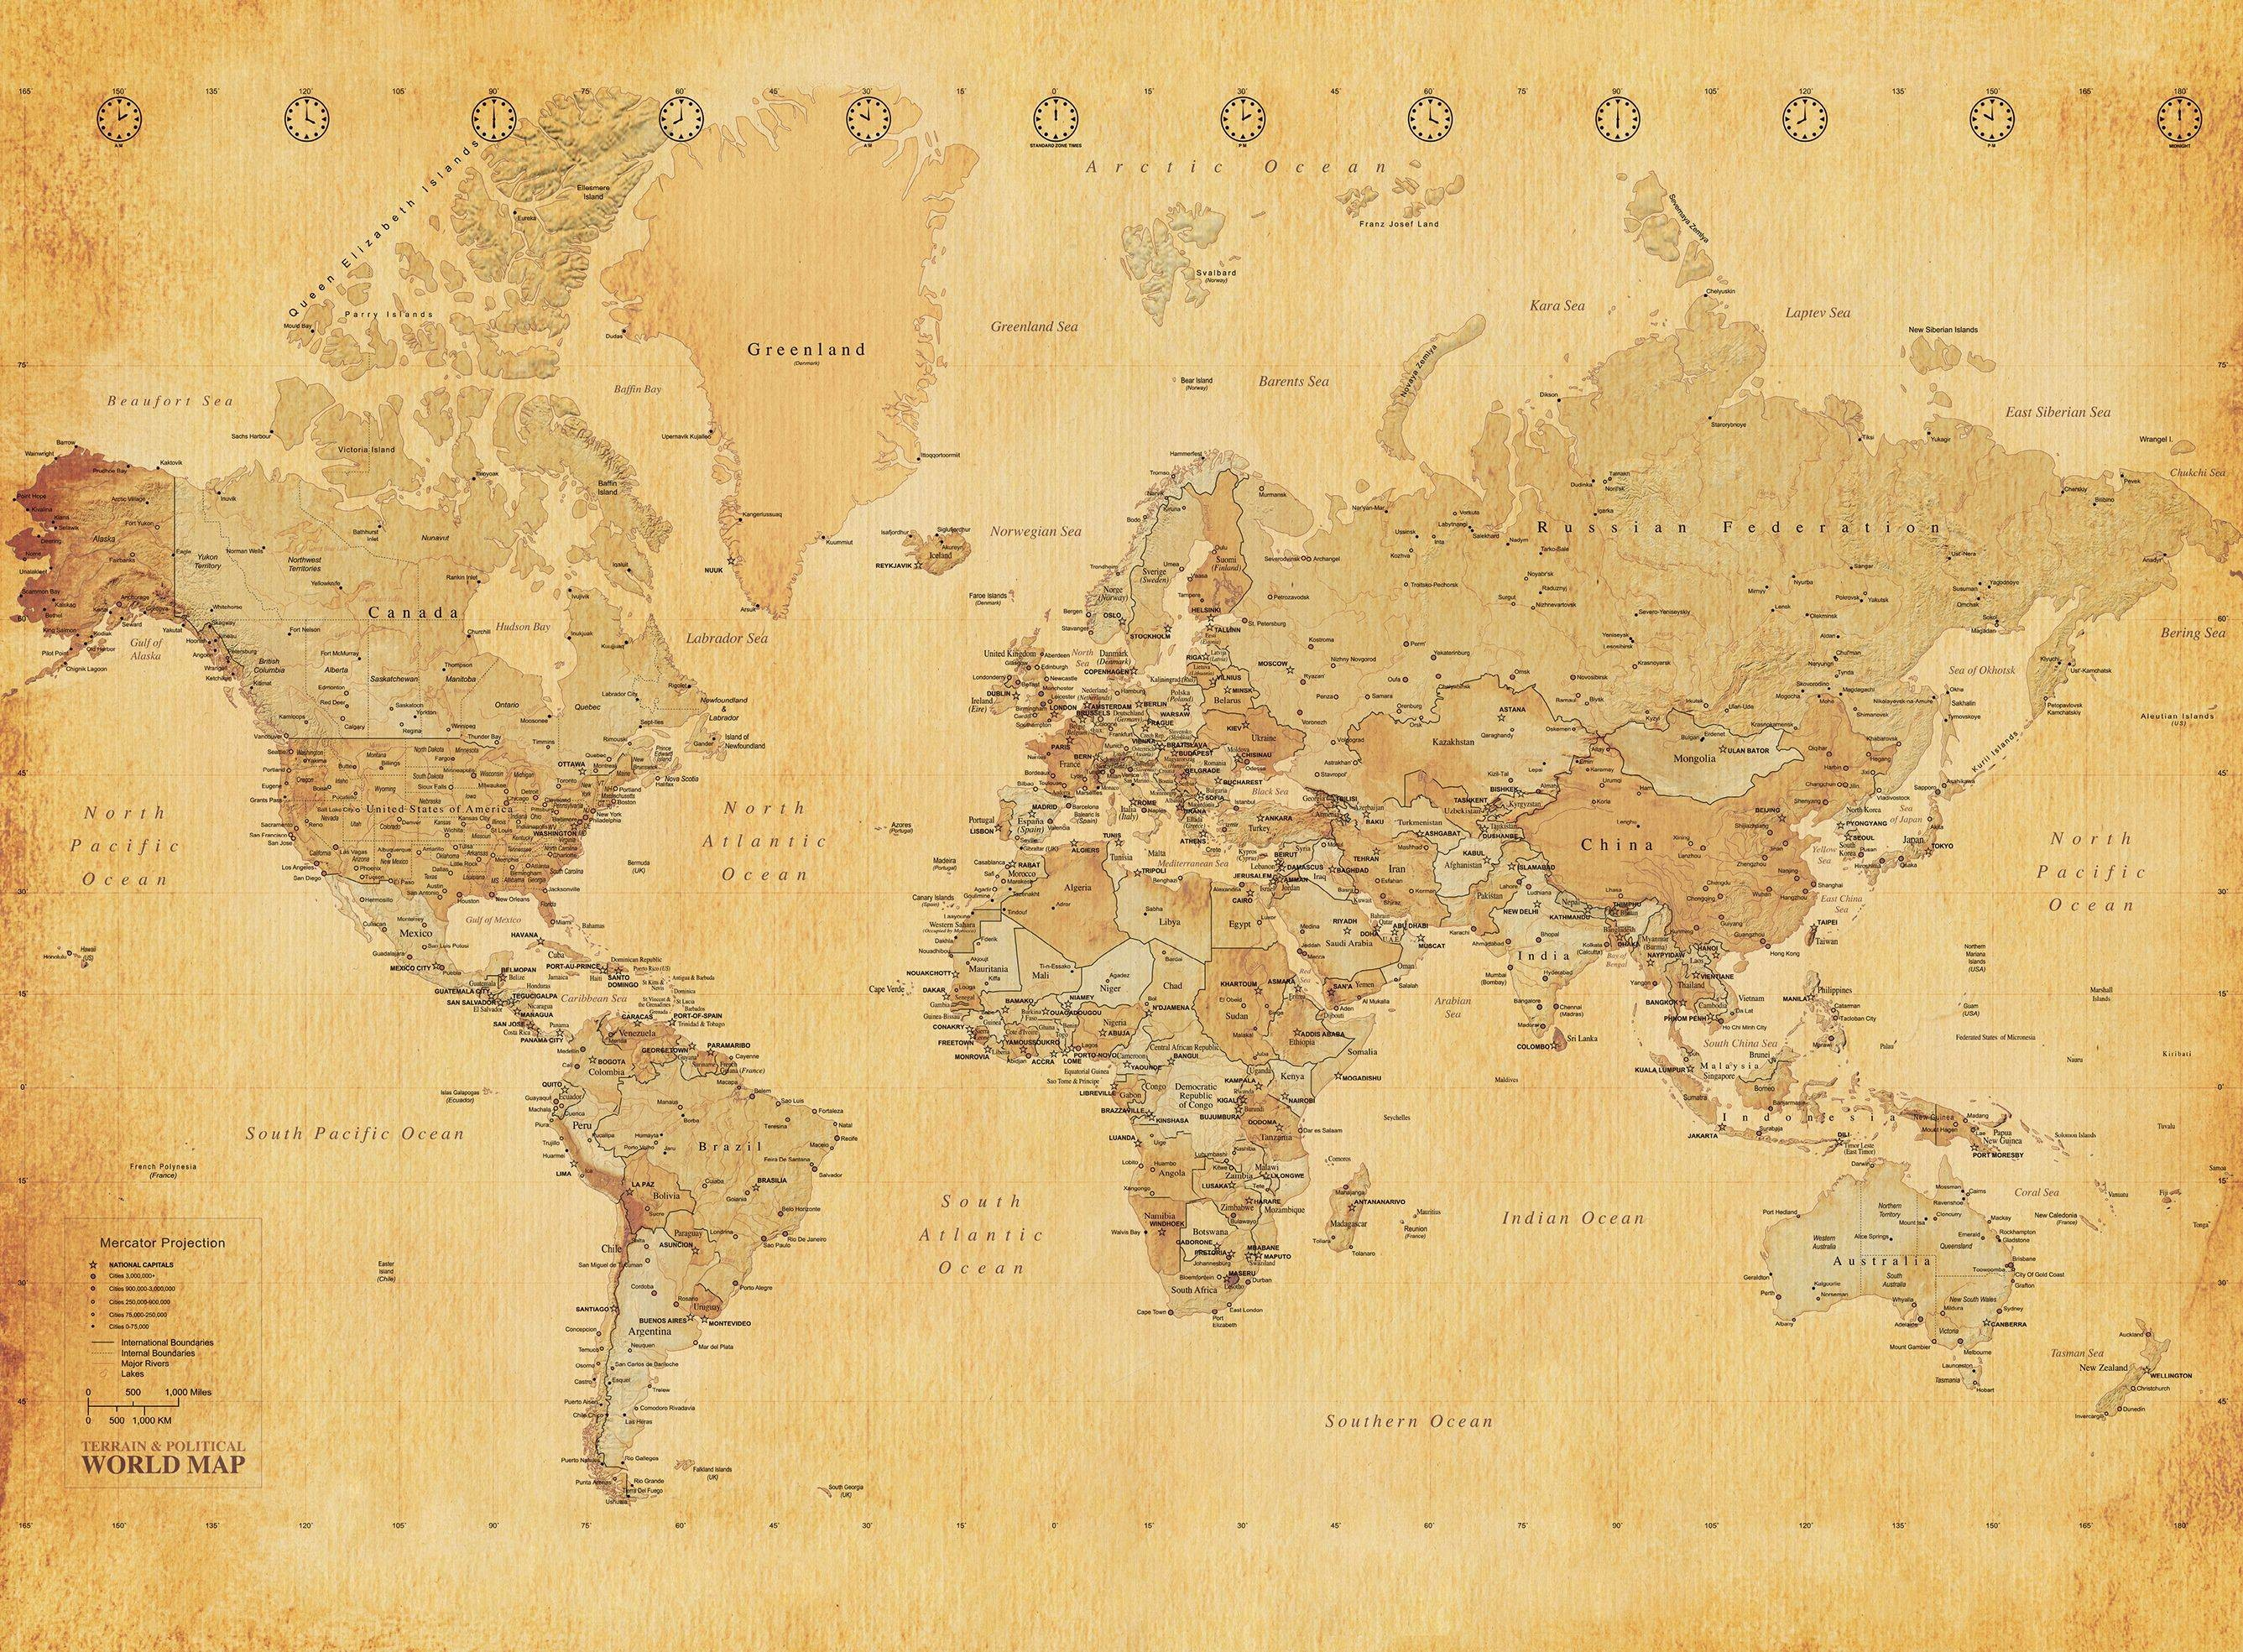 World map desktop wallpaper hd 70 images 1920x1200 wallpaper antique map compass background 1920x1200 pic gumiabroncs Image collections